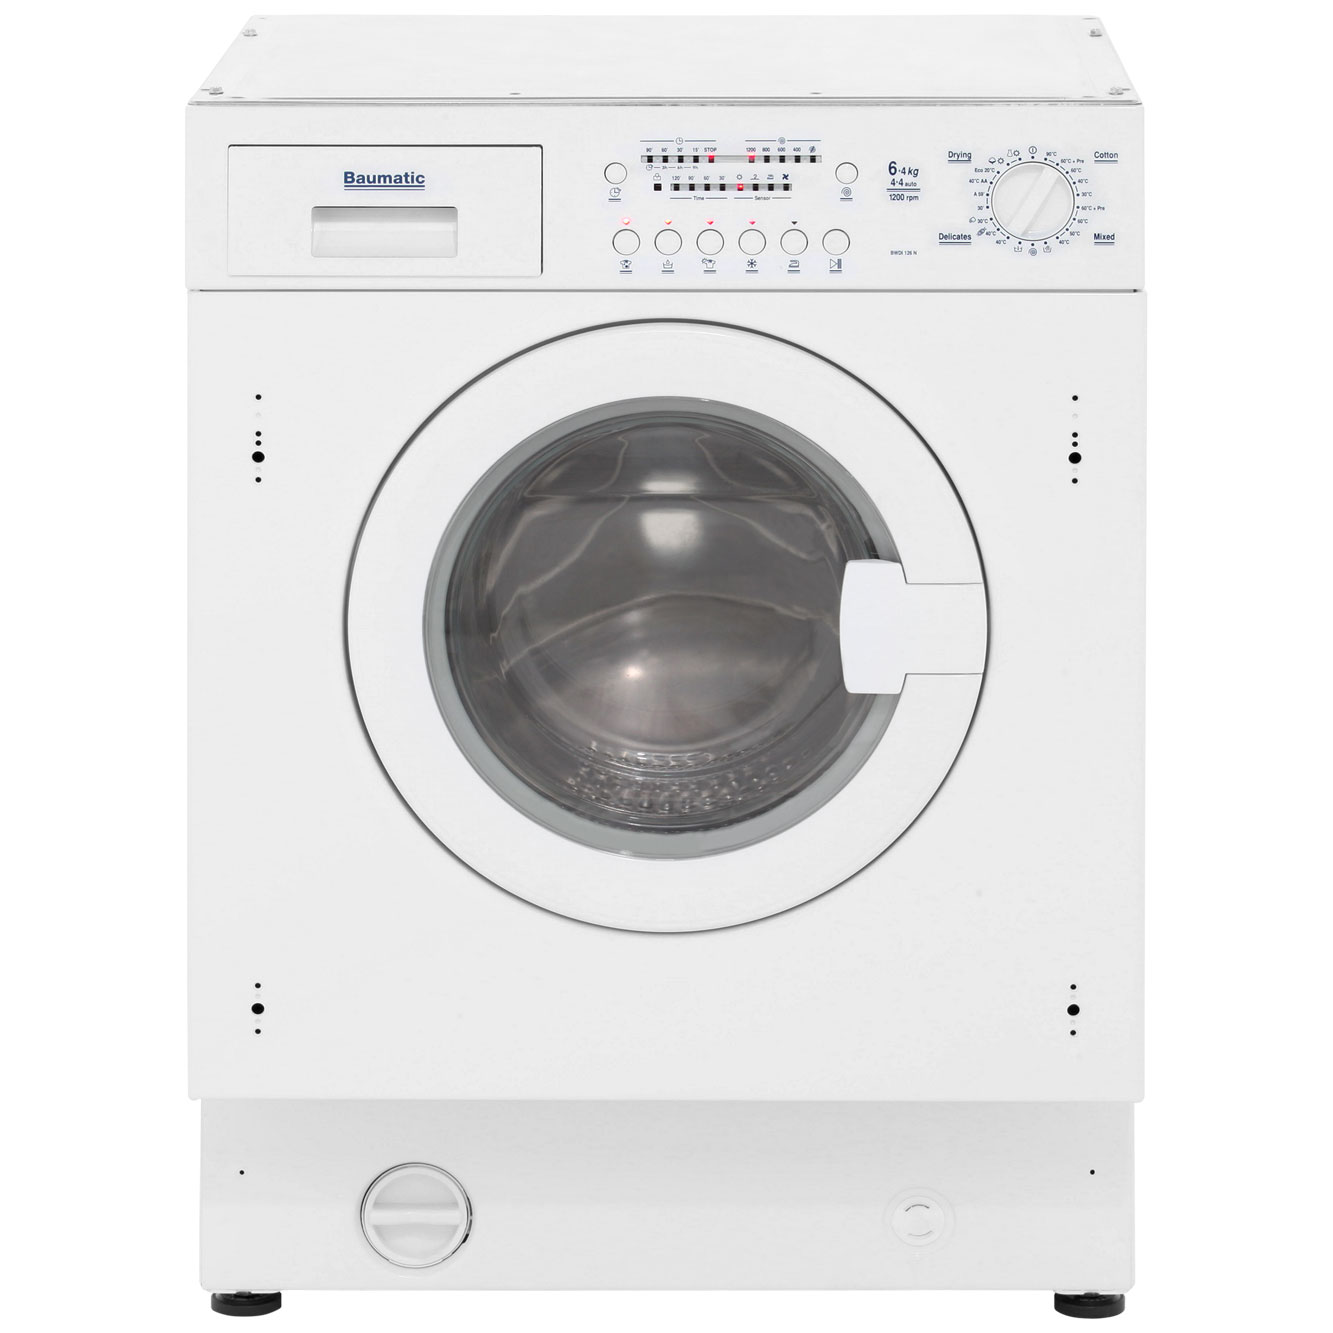 Baumatic BWDI126N Integrated 6Kg / 4Kg Washer Dryer with 1200 rpm